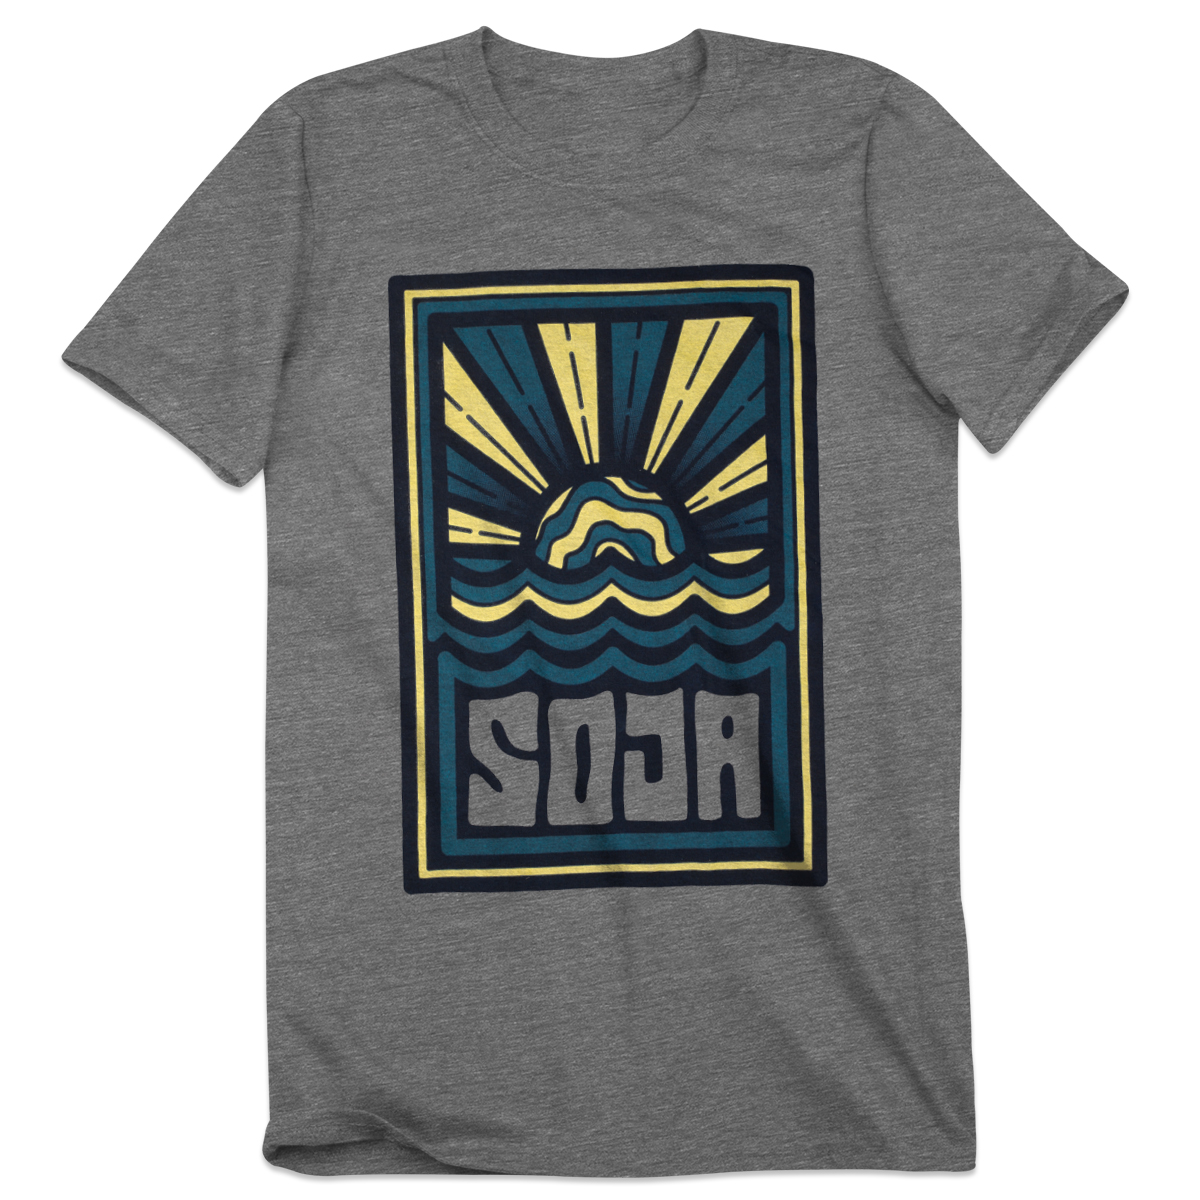 SOJA Sunrise Tee